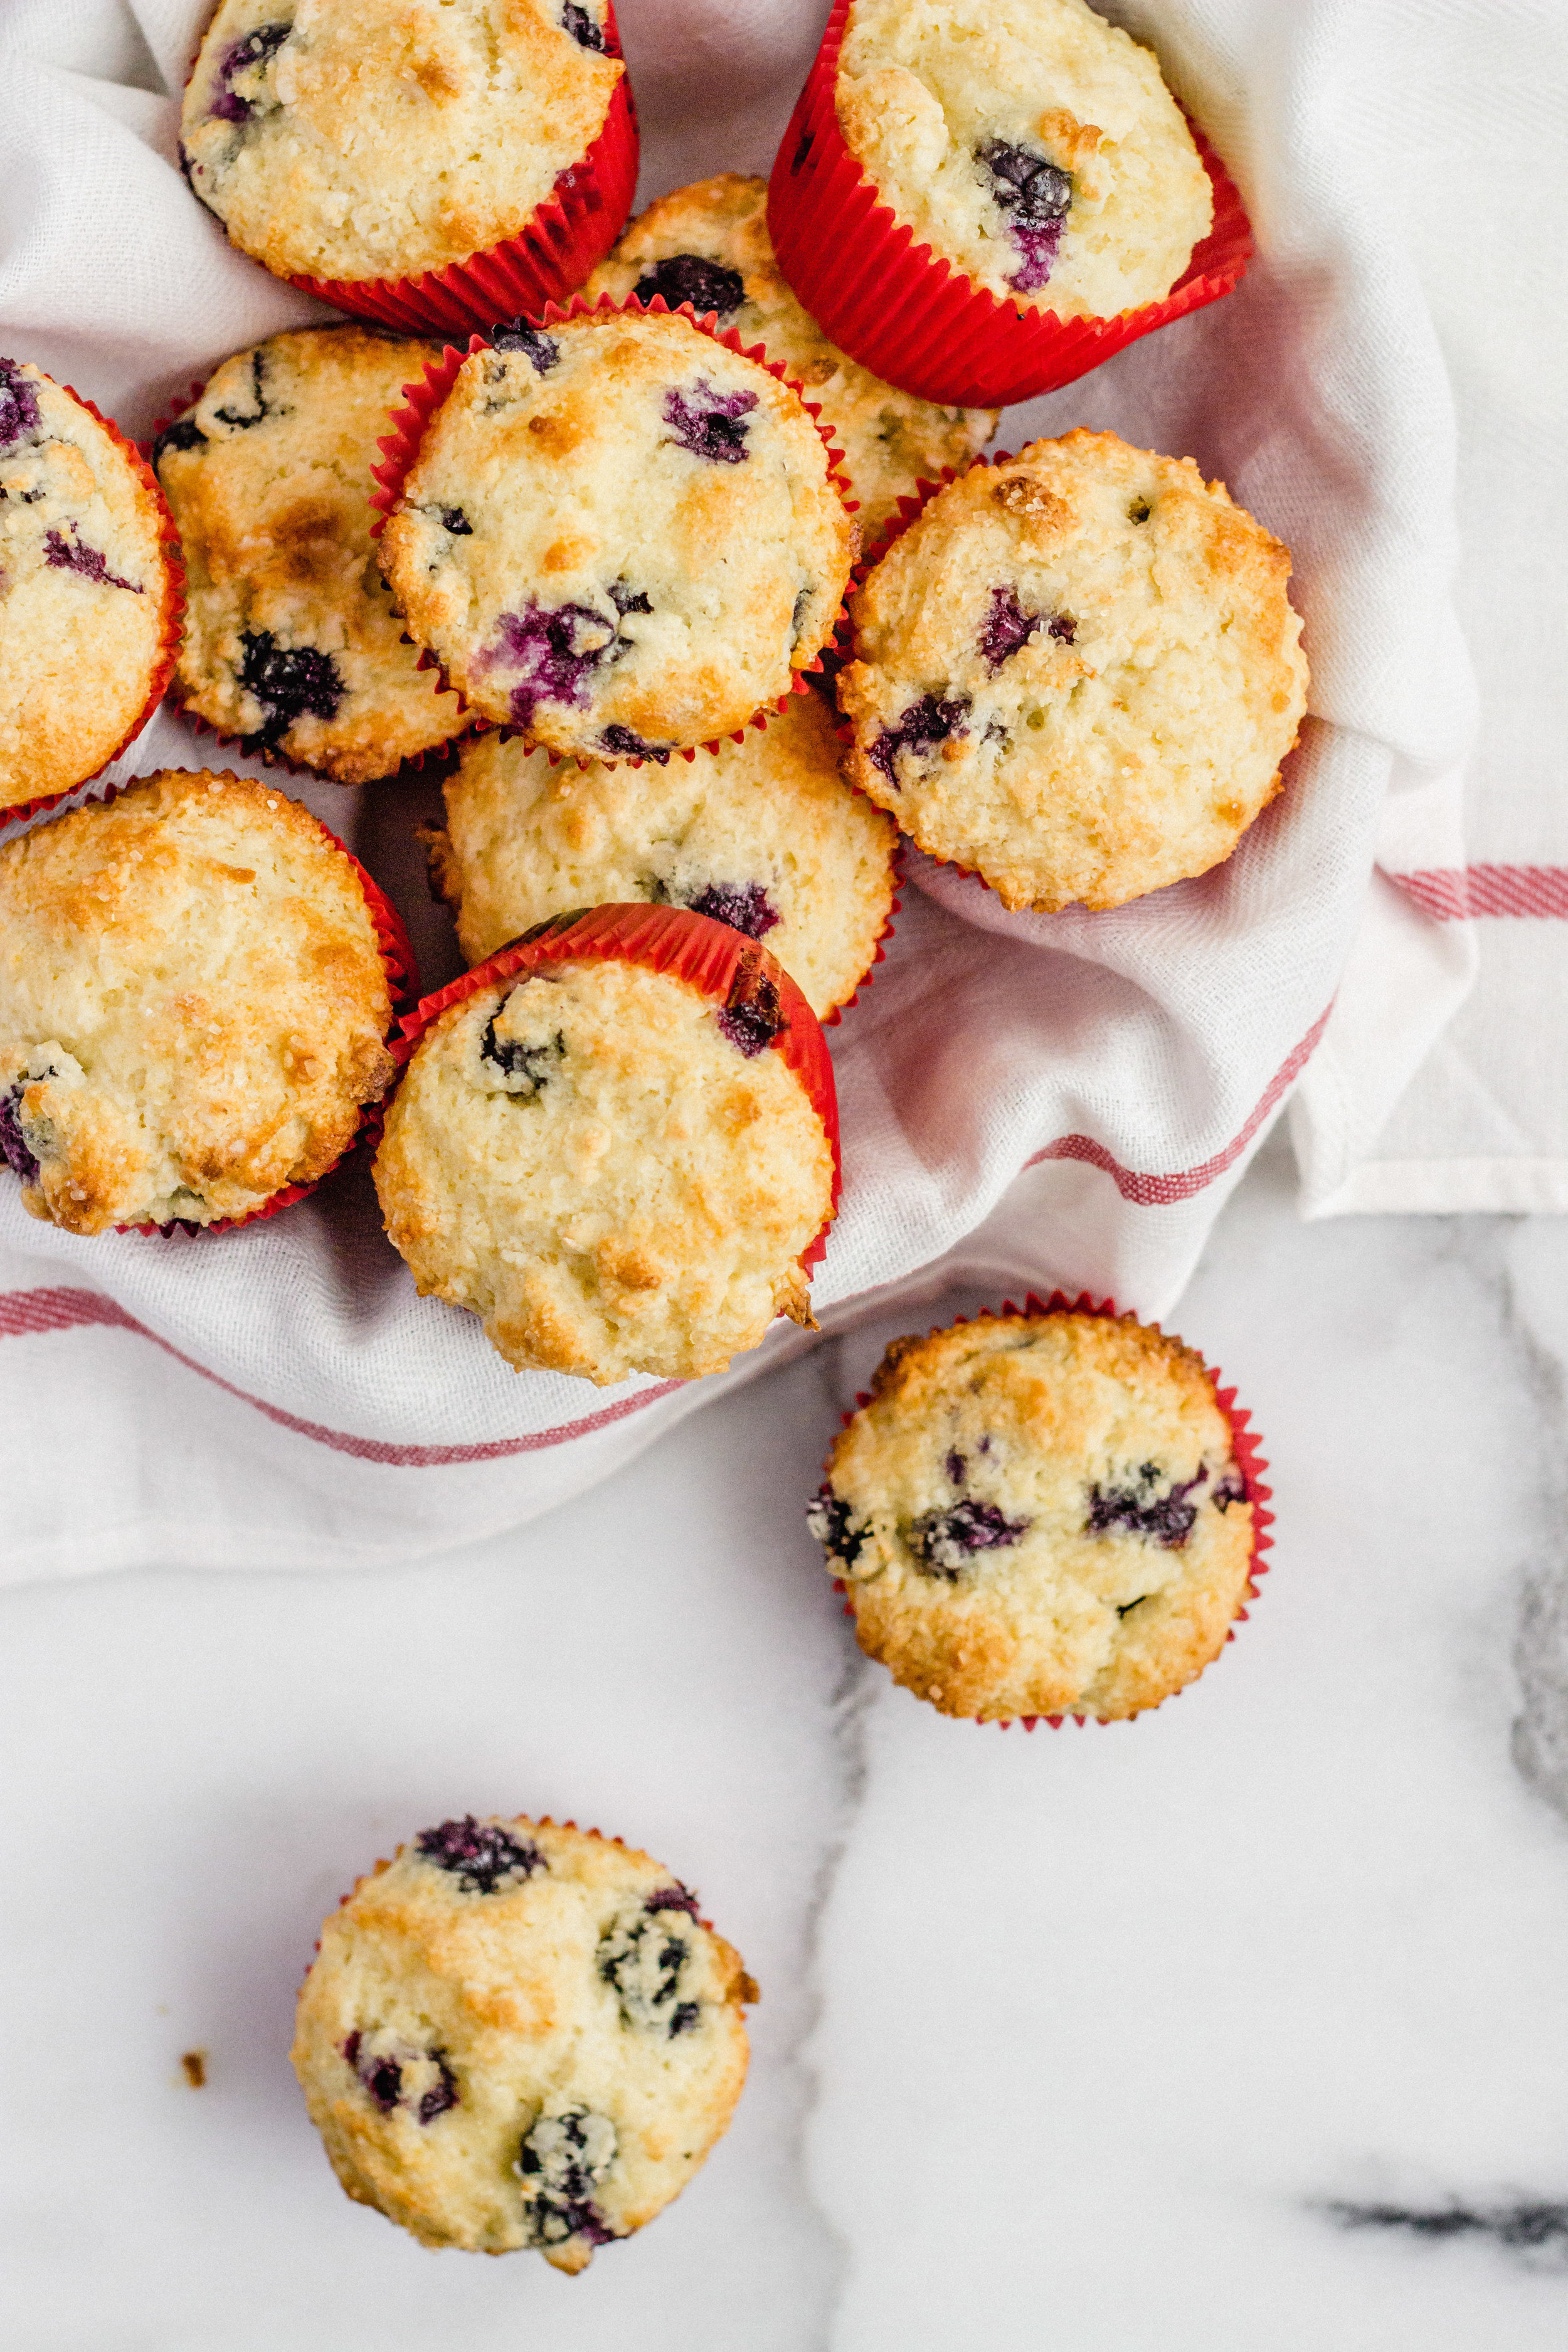 lemon_blueberry_muffins-1.jpg